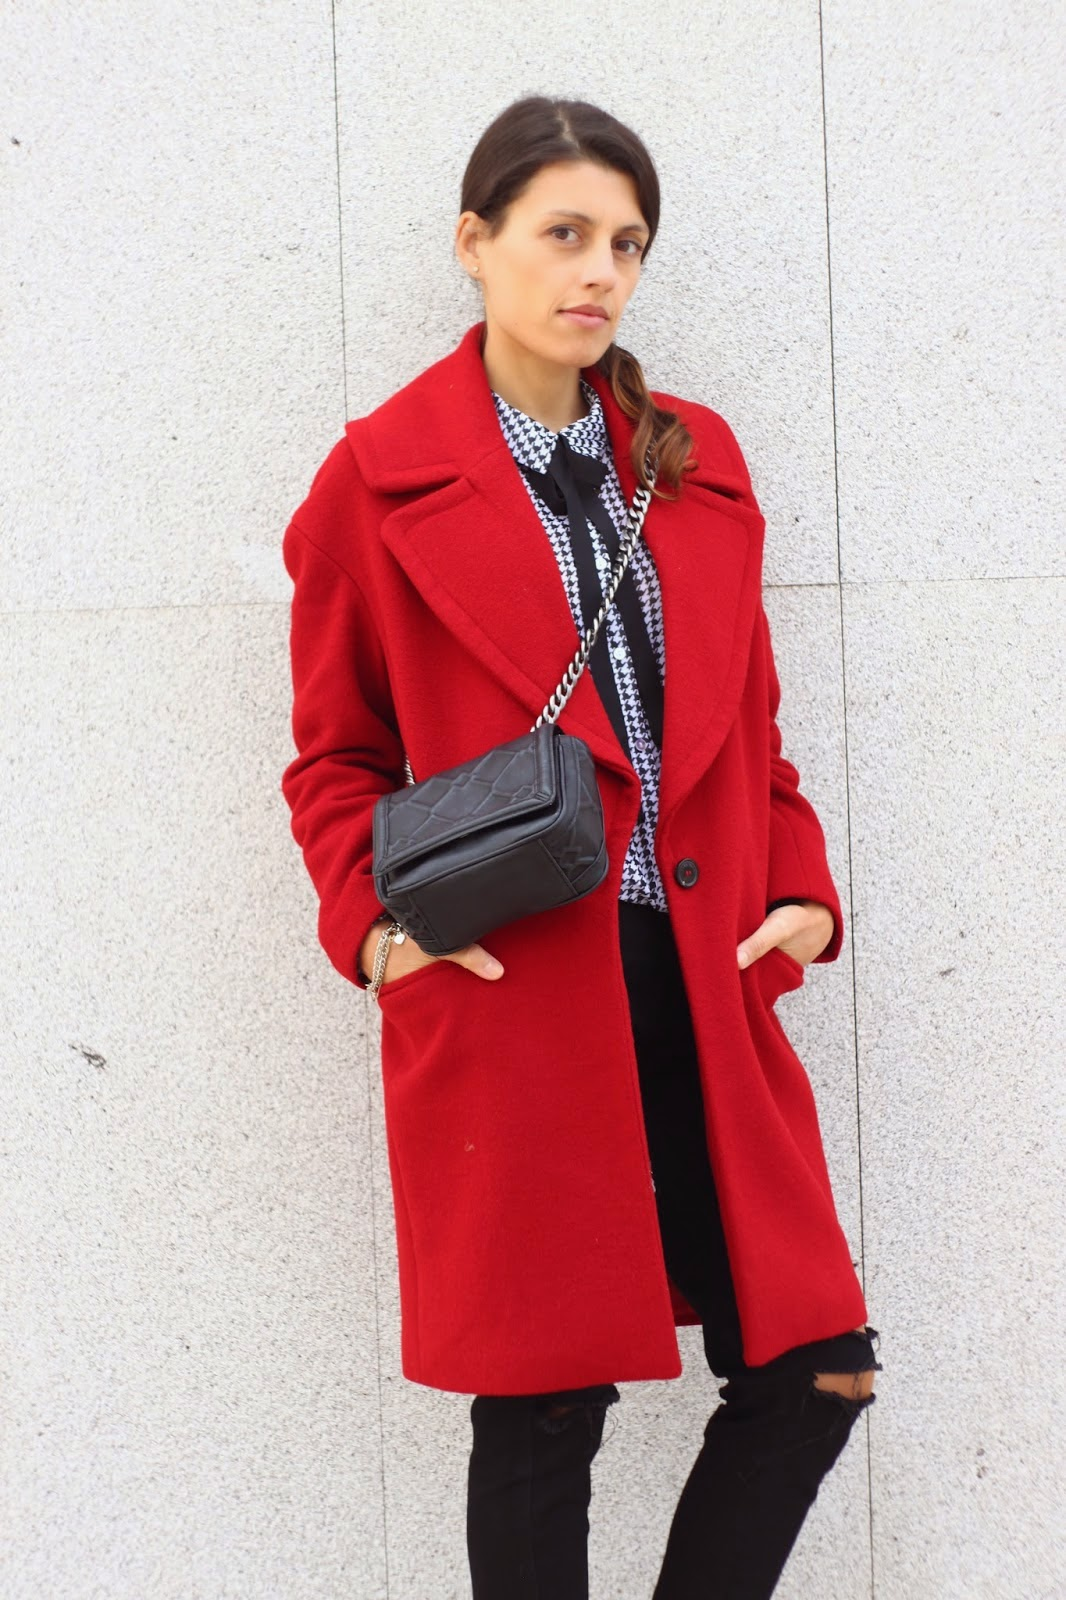 http://ilovefitametrica.blogspot.pt/2014/11/red-black-bow.html#more